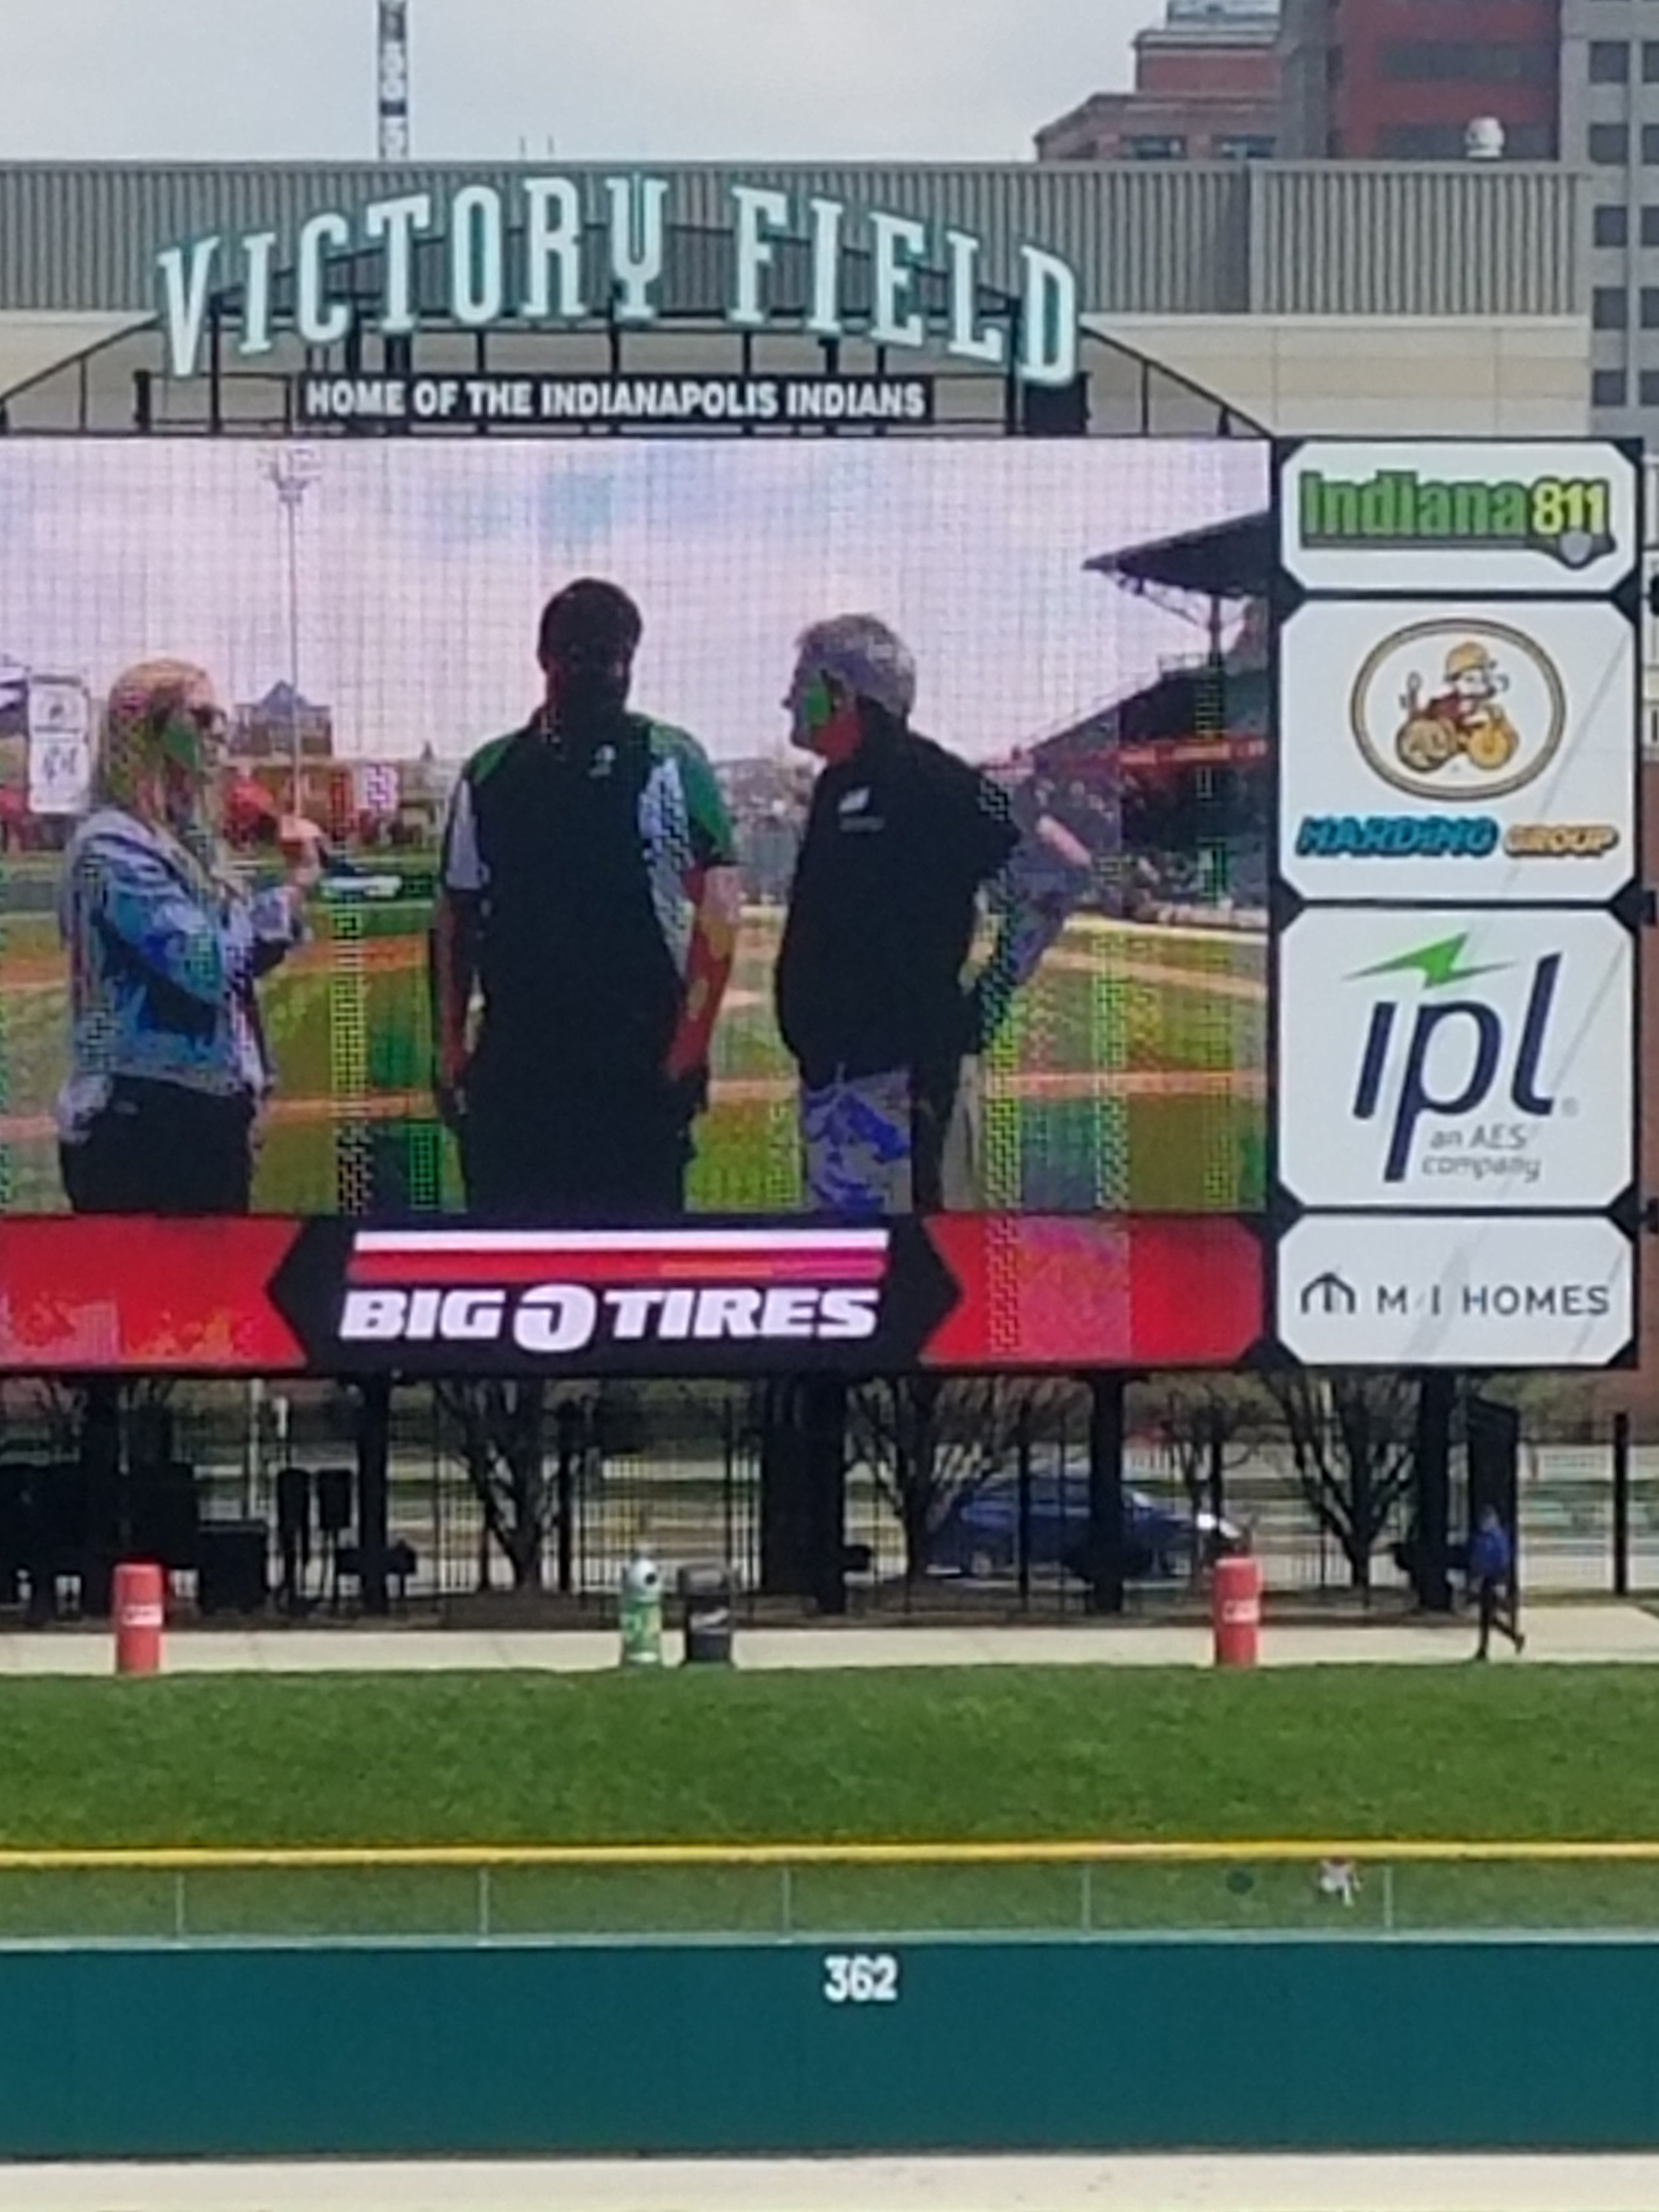 Zach Livengood and John Wellspring participating in the Big O Tires Game